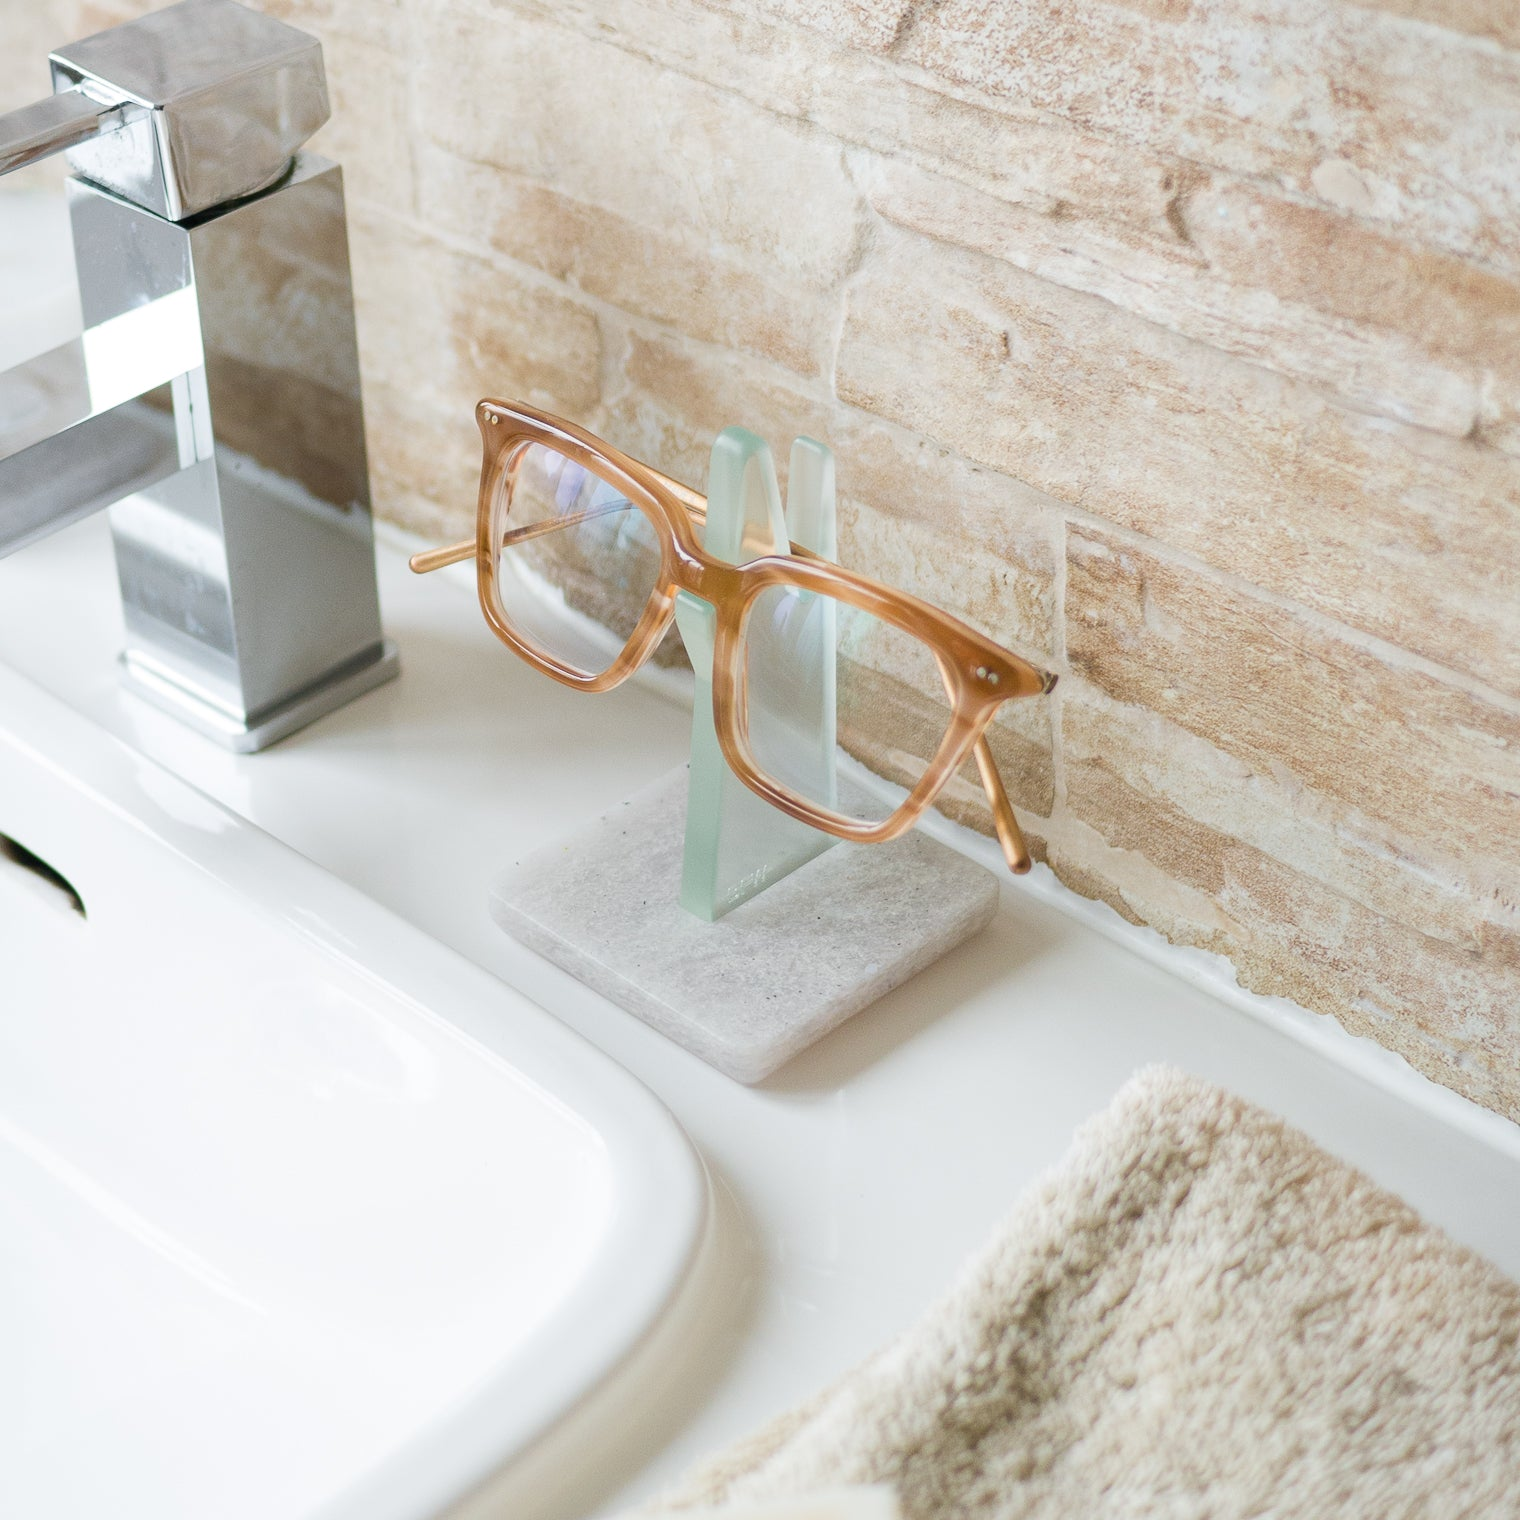 Green spectacle holder in bathroom holding glasses